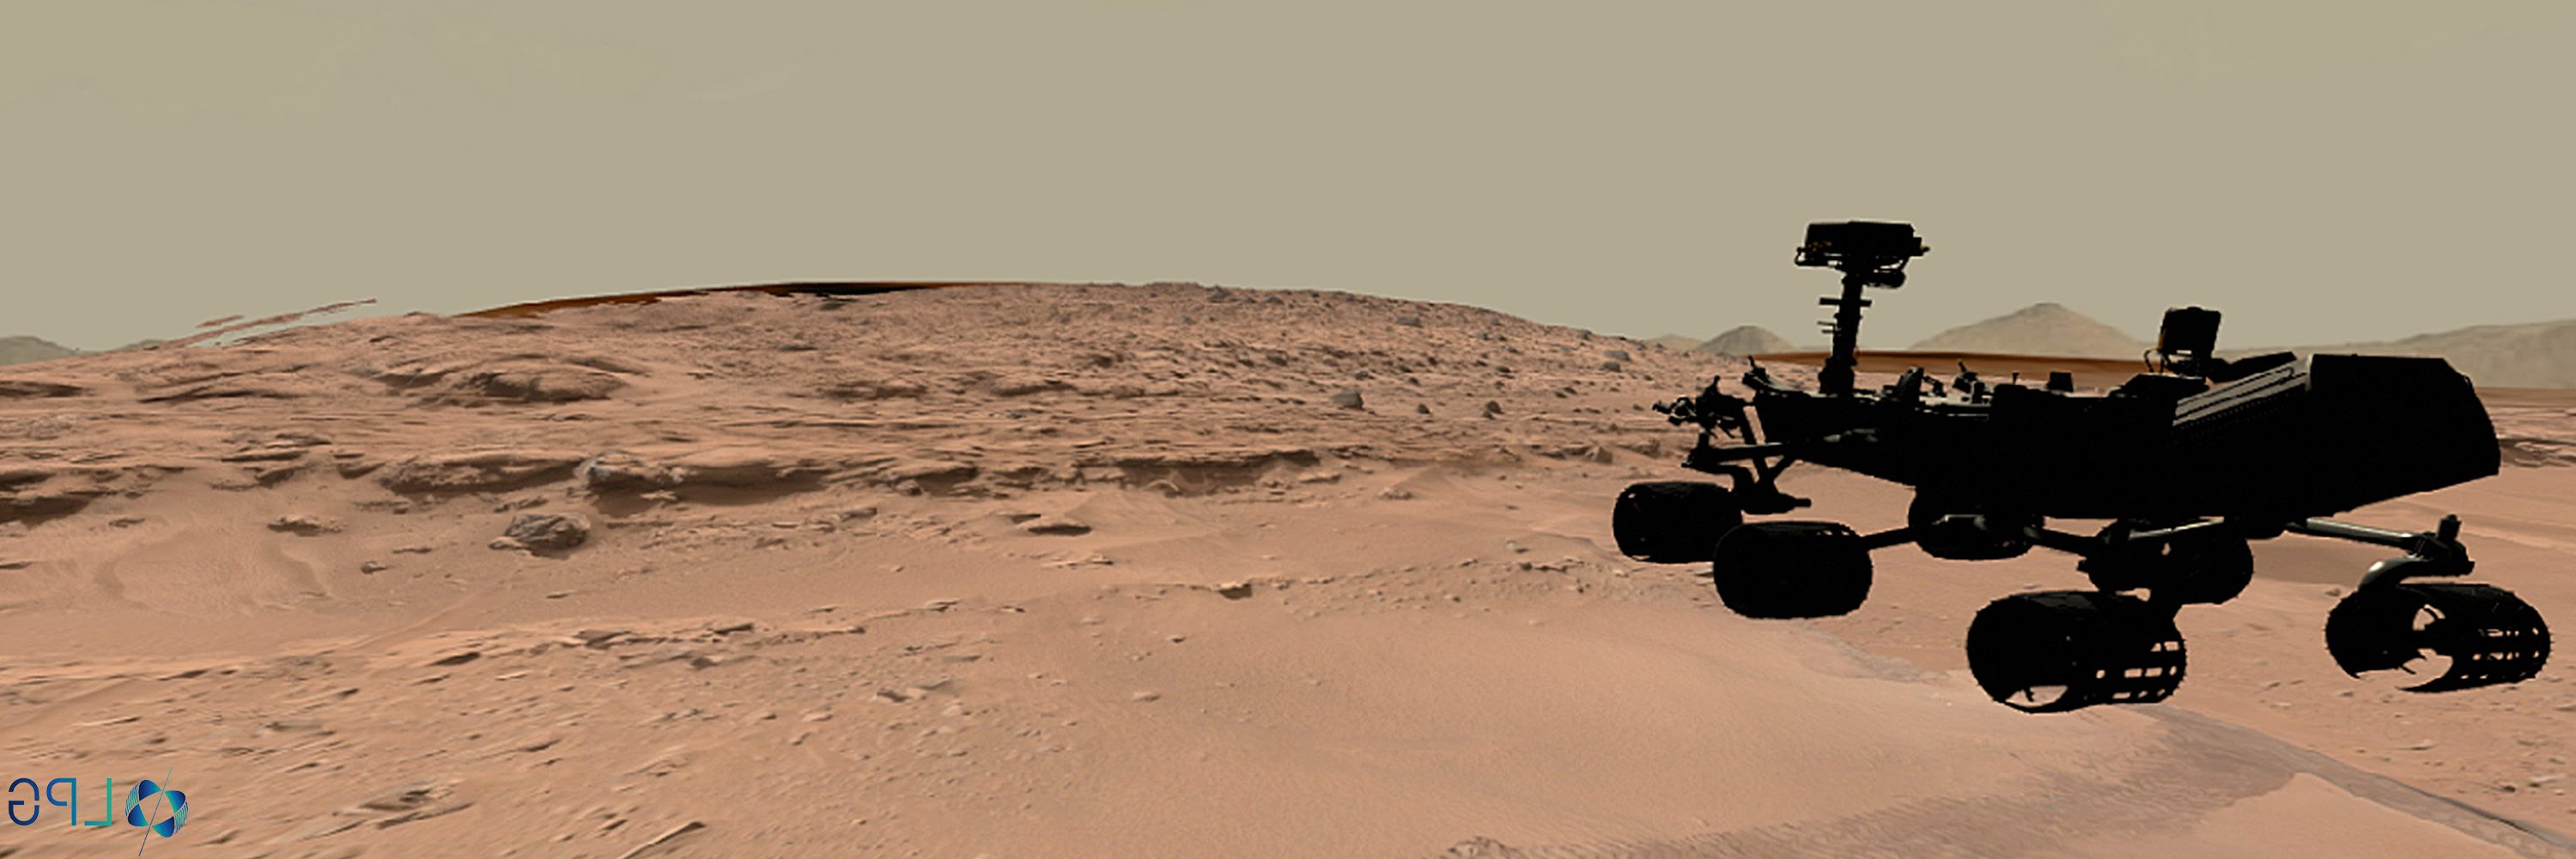 Science Spotlight: A Geological Field Trip to Mars